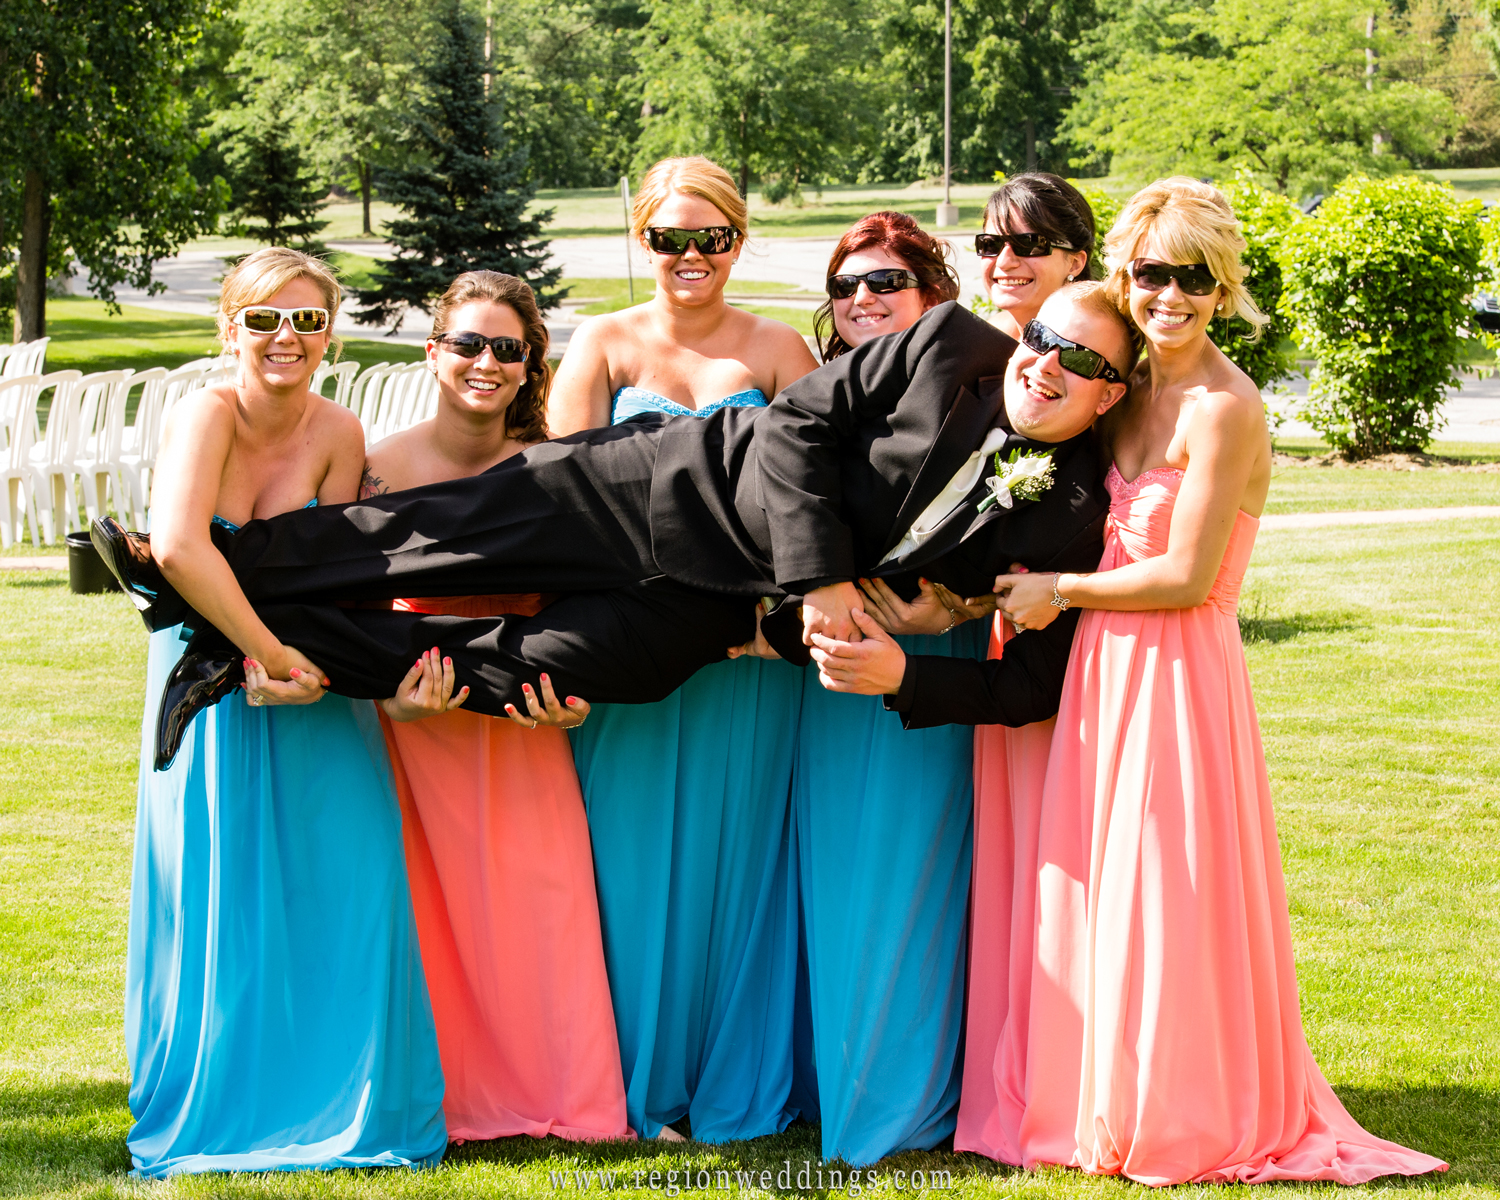 Bridesmaids carry the groom while wearing sun glasses at an outdoor wedding at the Halls of St. George.